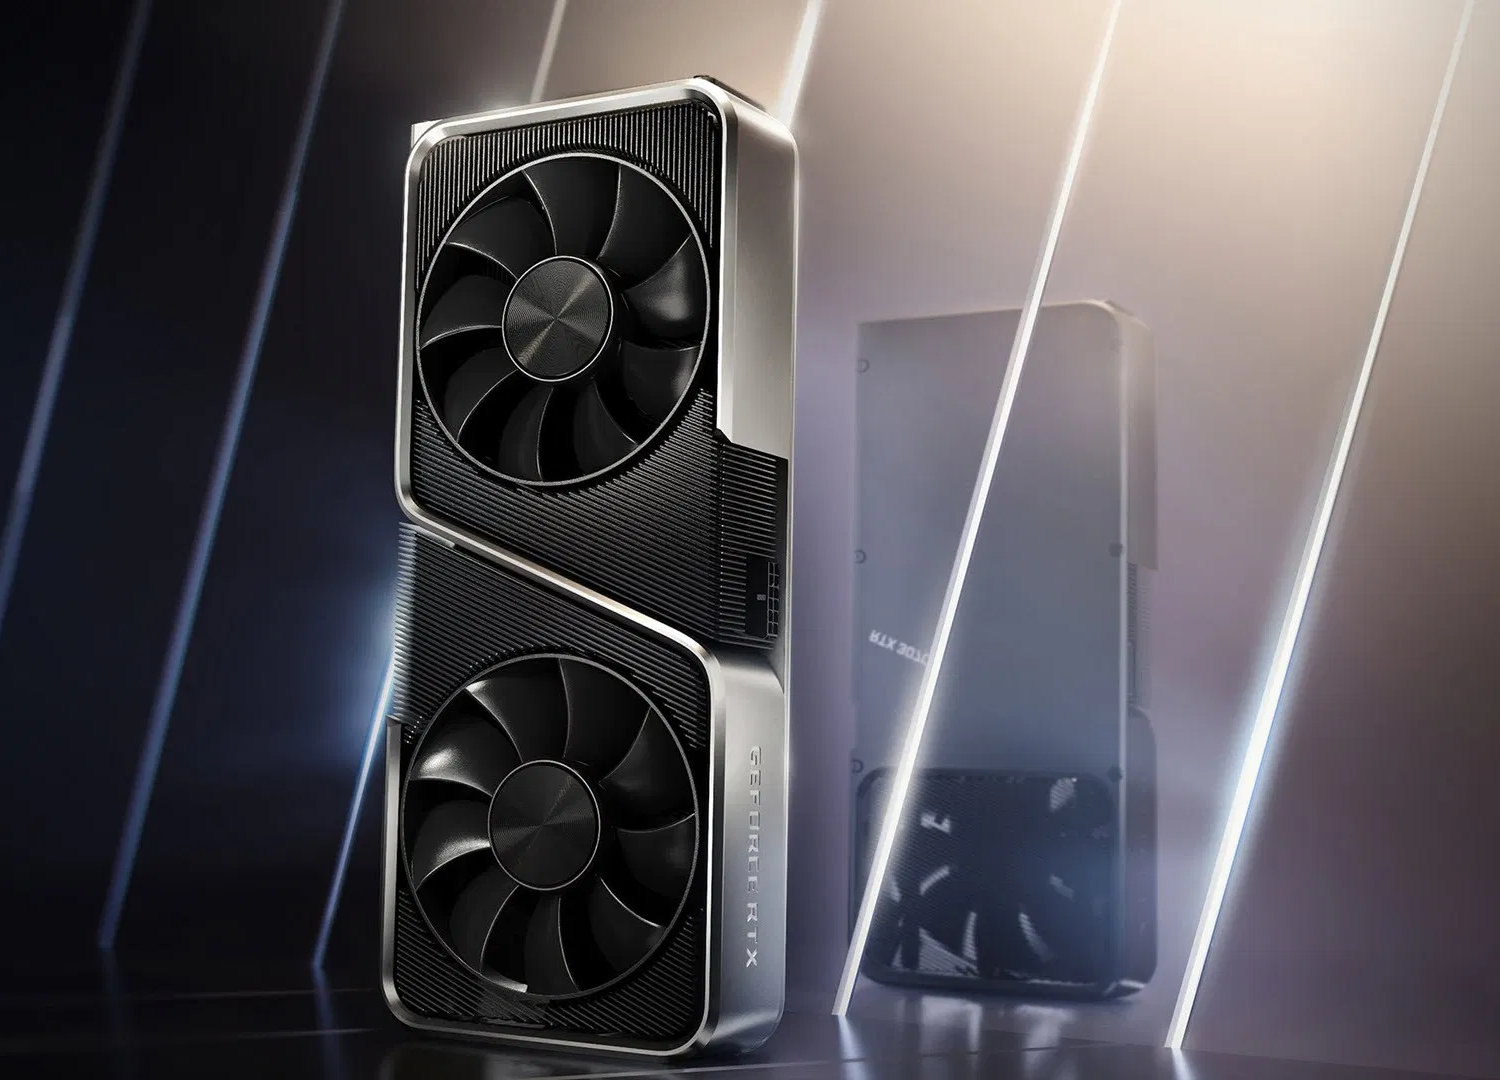 Nvidia GeForce RTX 3060 Ti Founders Edition looks just like an RTX 3070 in new leaked images